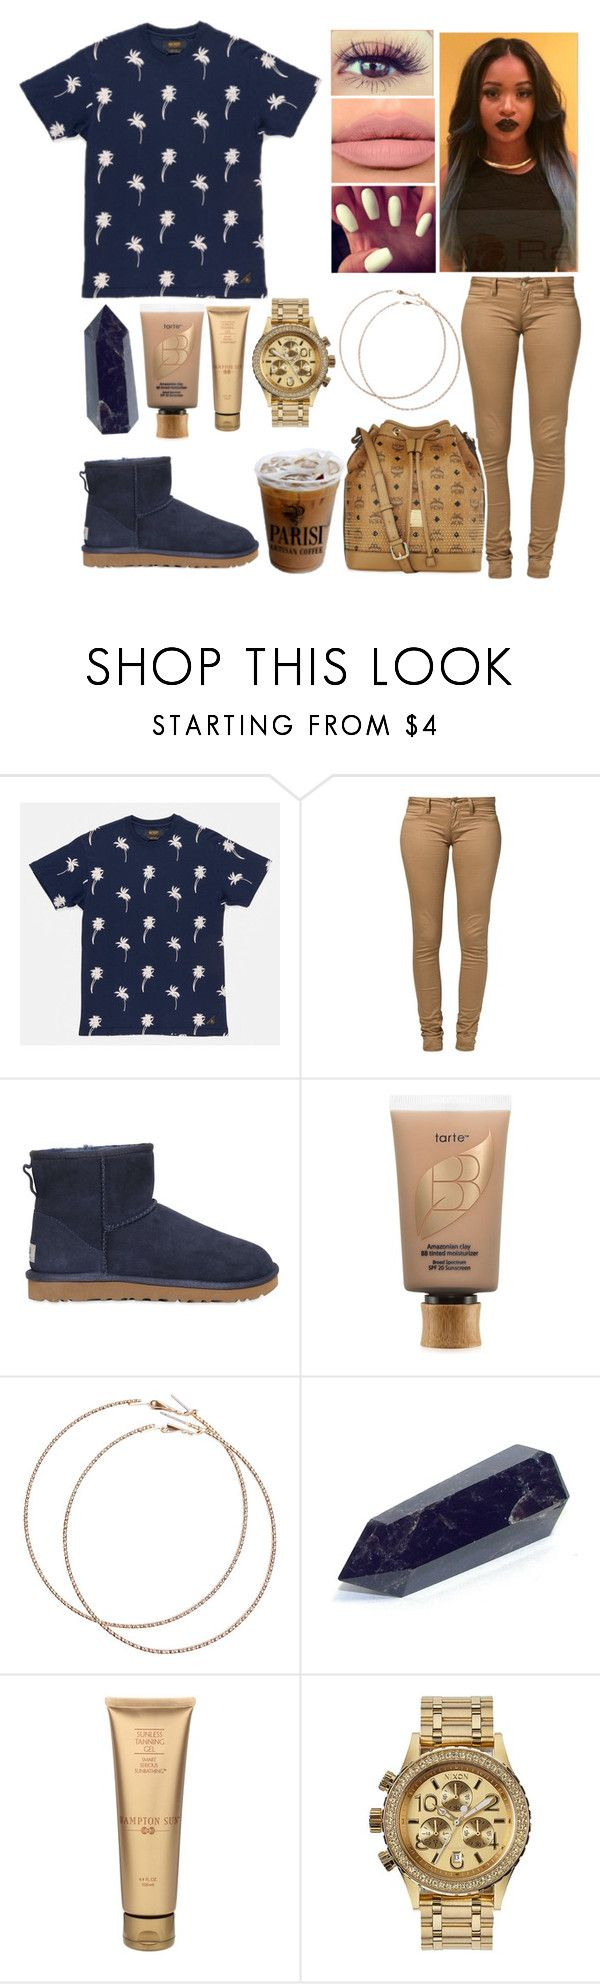 """Untitled #881"" by lovelyxox ❤ liked on Polyvore featuring Monkee Genes, UGG Australia, tarte, Wet Seal, ColourPop, Hampton Sun, Nixon and MCM"